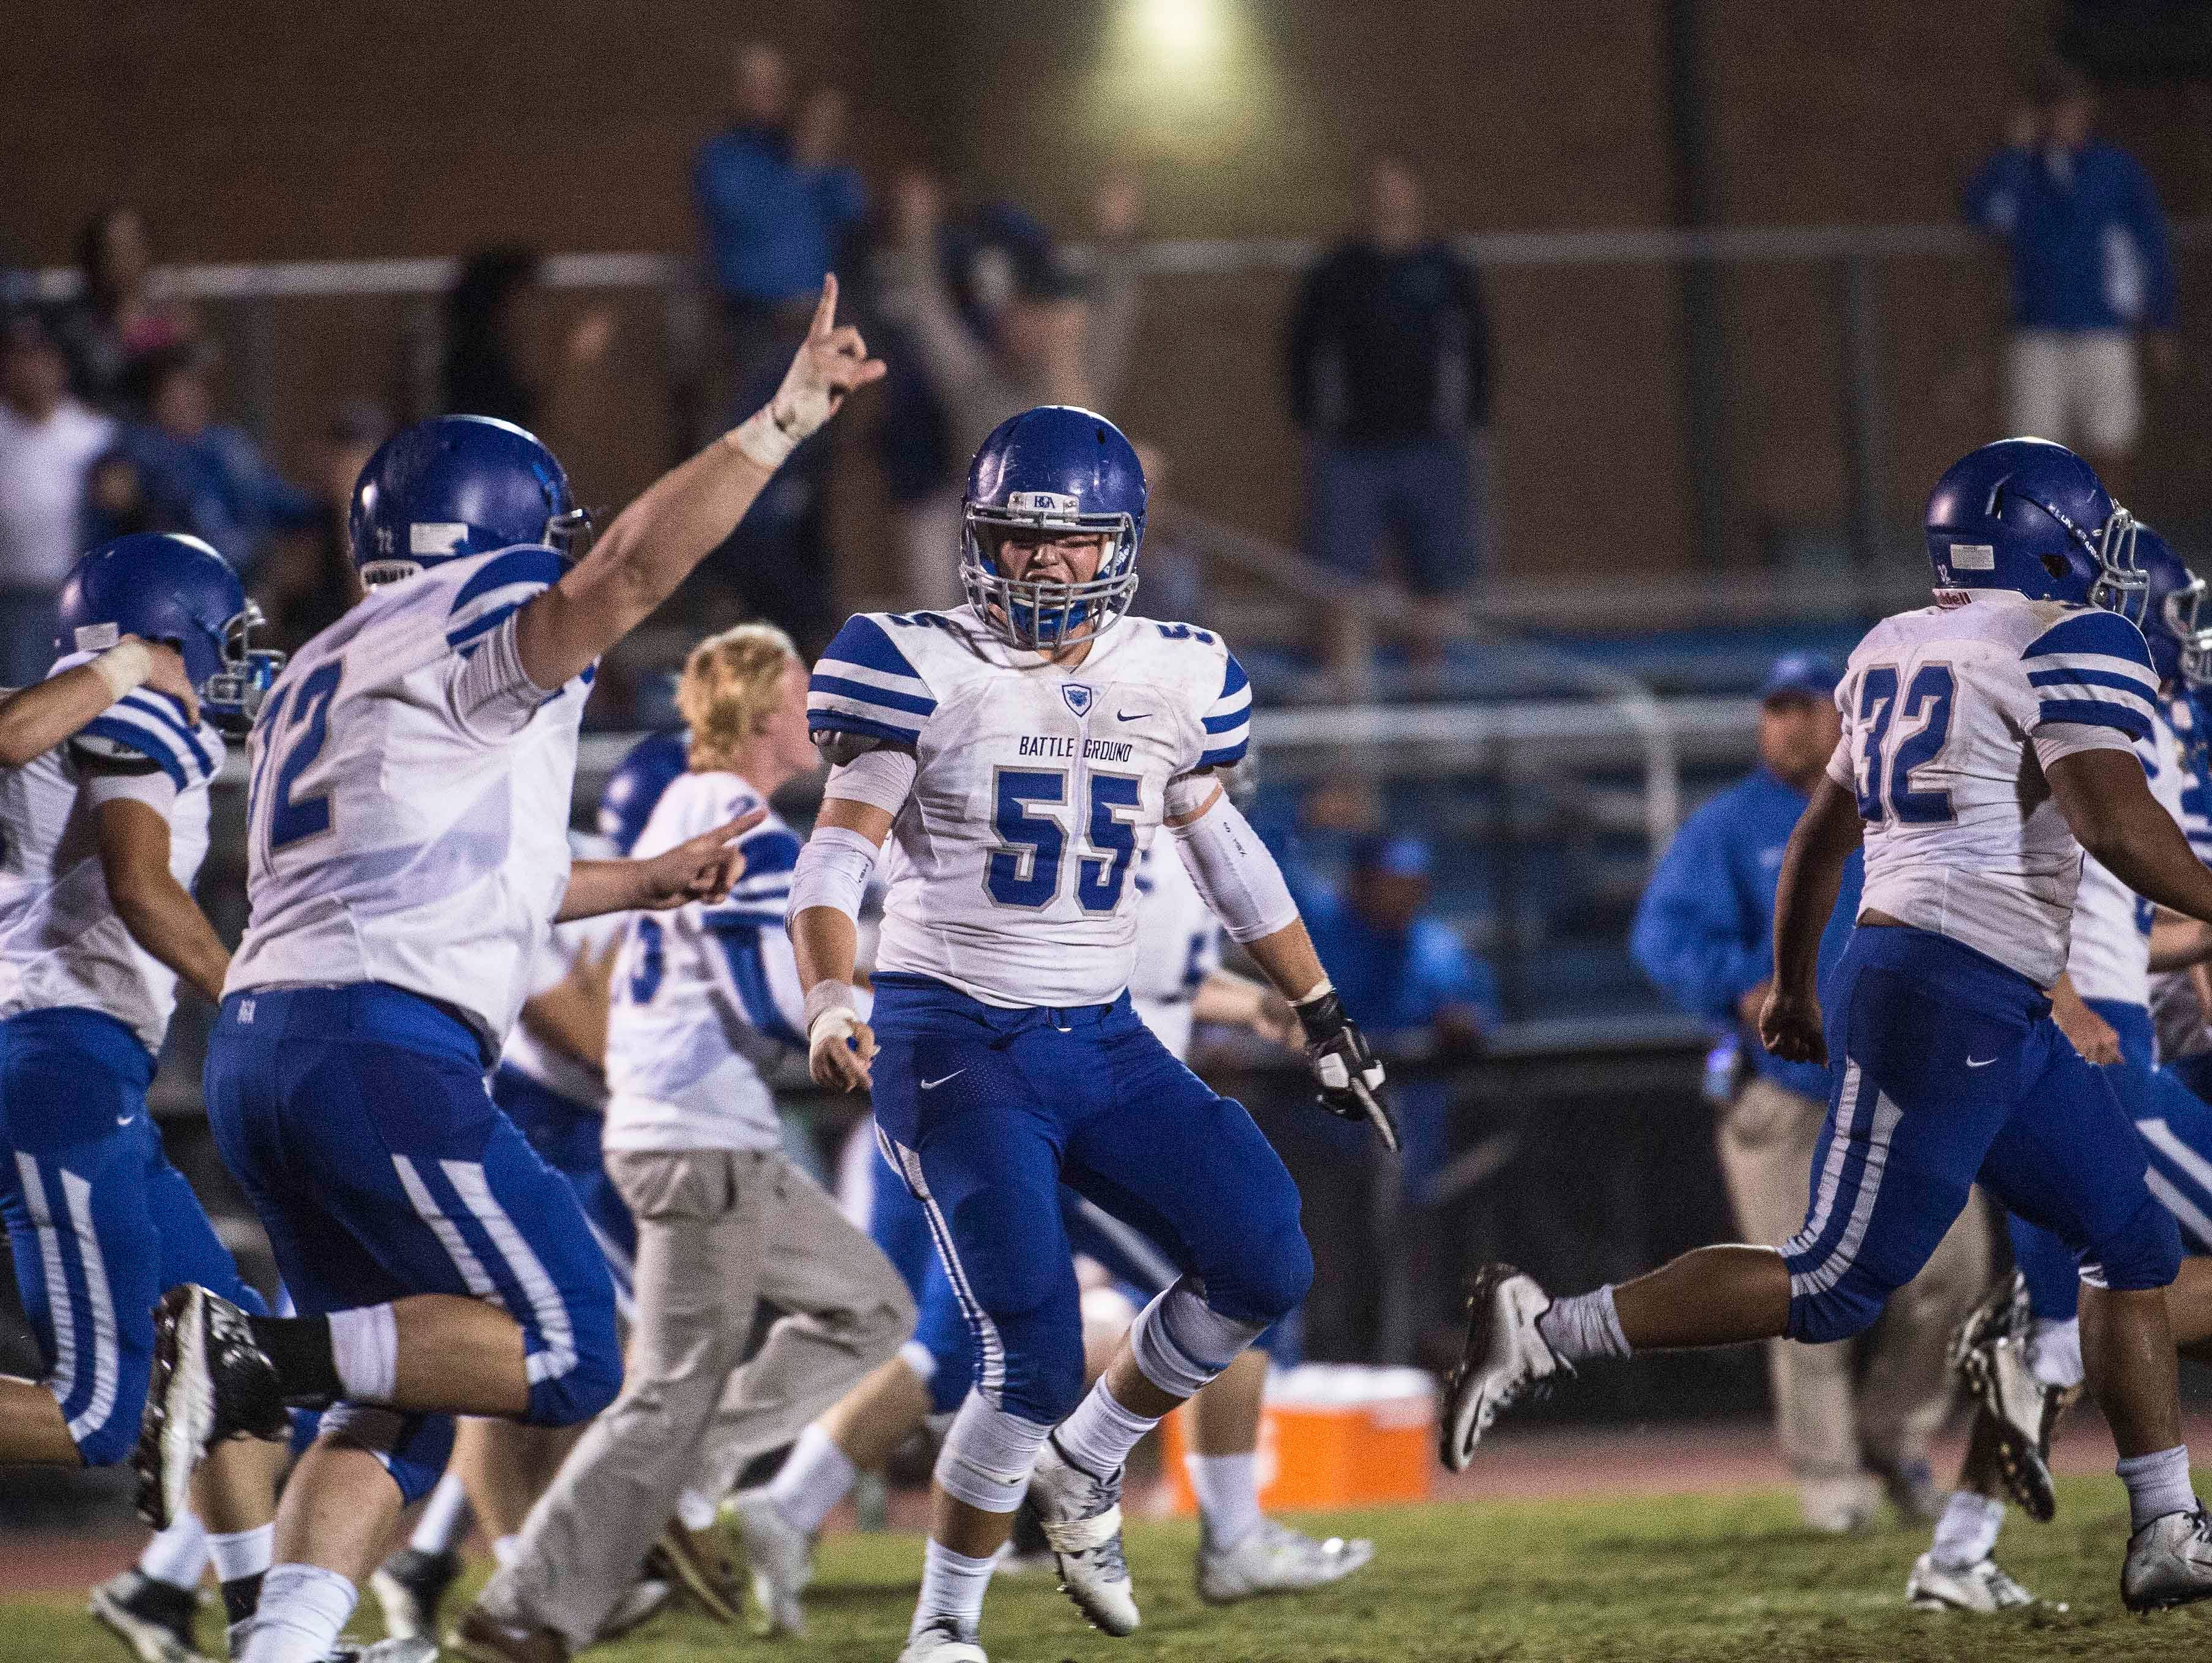 BGA celebrates after beating Page 28-27 at Page High School on Saturday Sept. 26, 2015, in Franklin in Tenn.